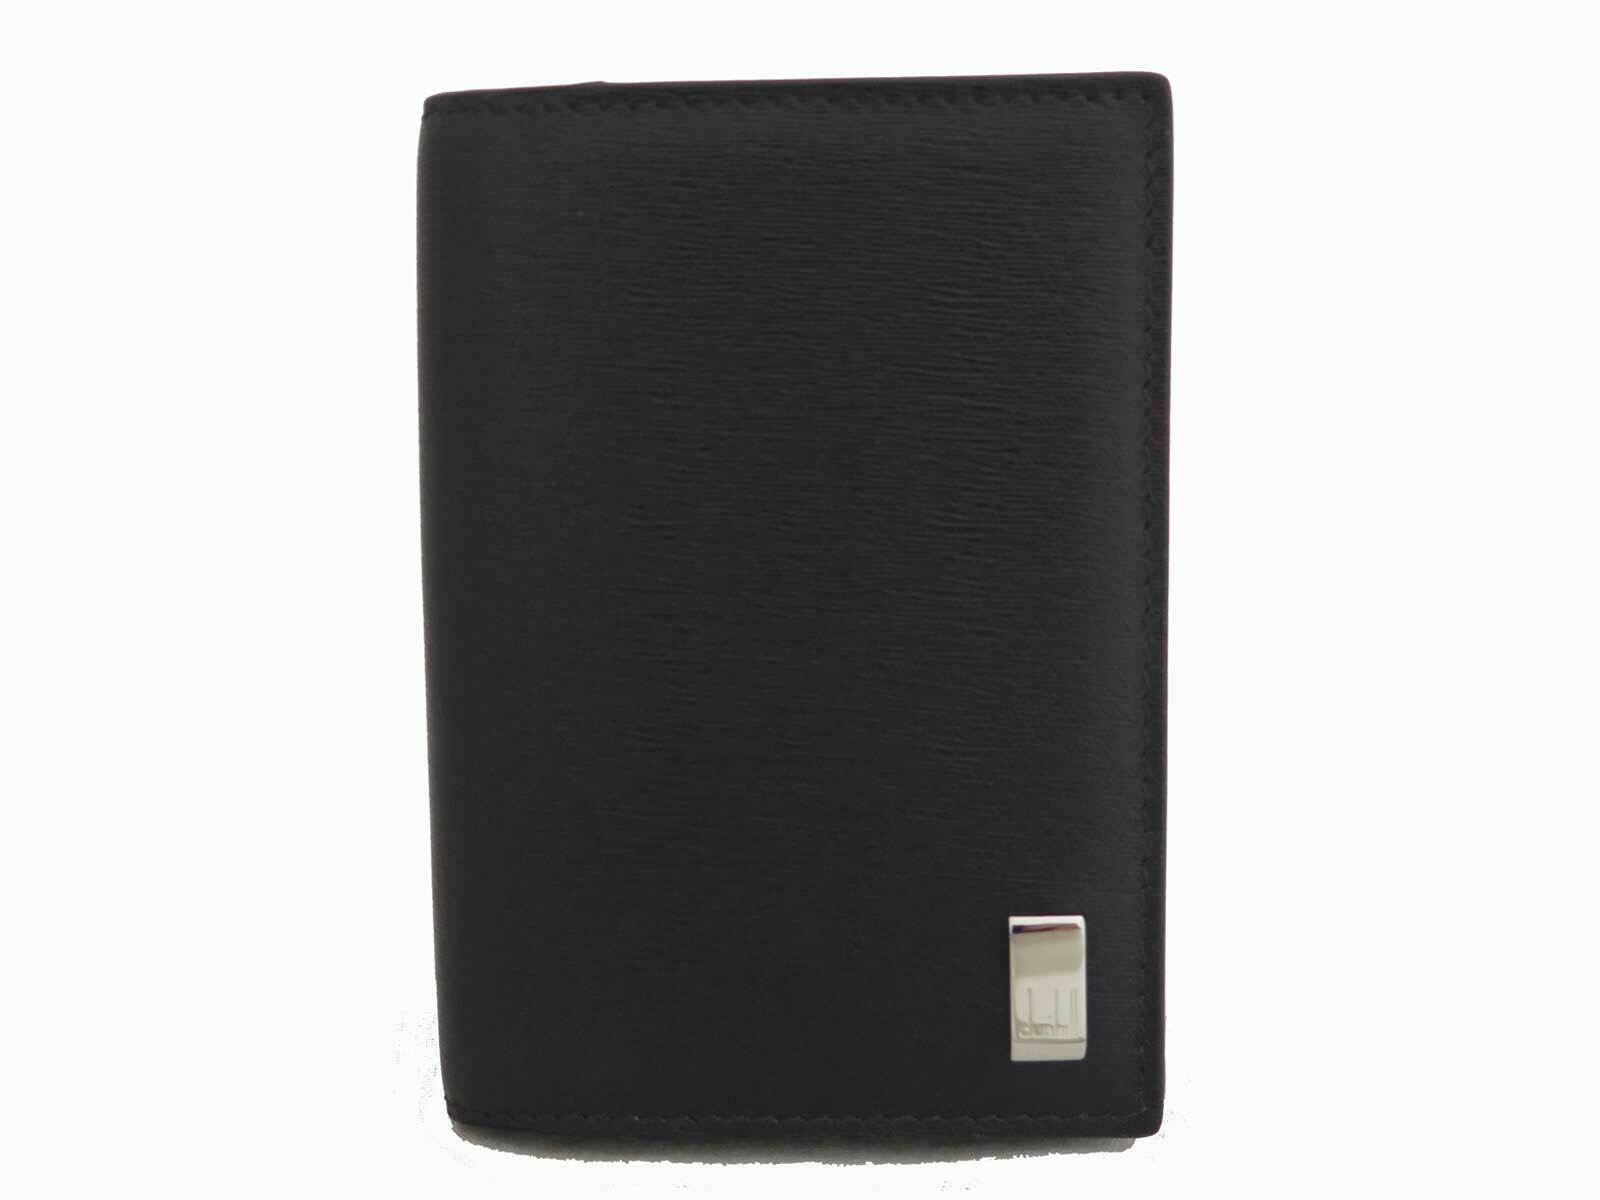 Auth dunhill Logo Card Case Holder Dark Brown Leather *MINT* - e48717f